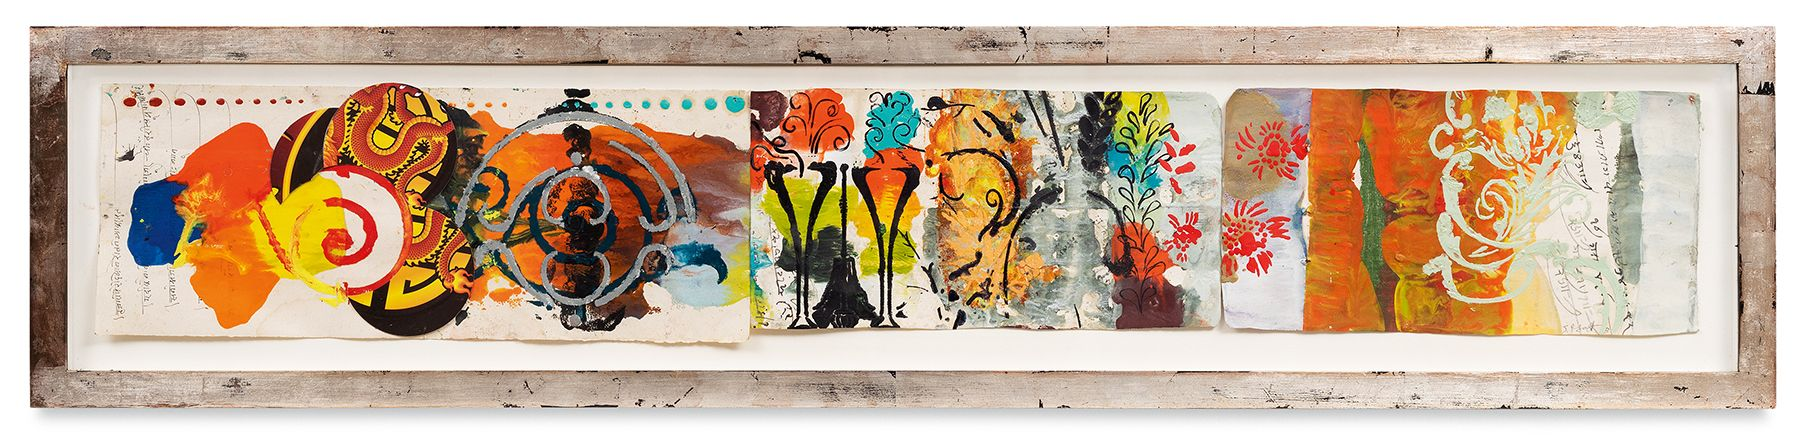 Ragamala 9 , 2013, Oil stick, encaustic, vintage Indian paper, in artist's frame, 10 x 46 inches, 25.4 x 116.8 cm, MMG#30629